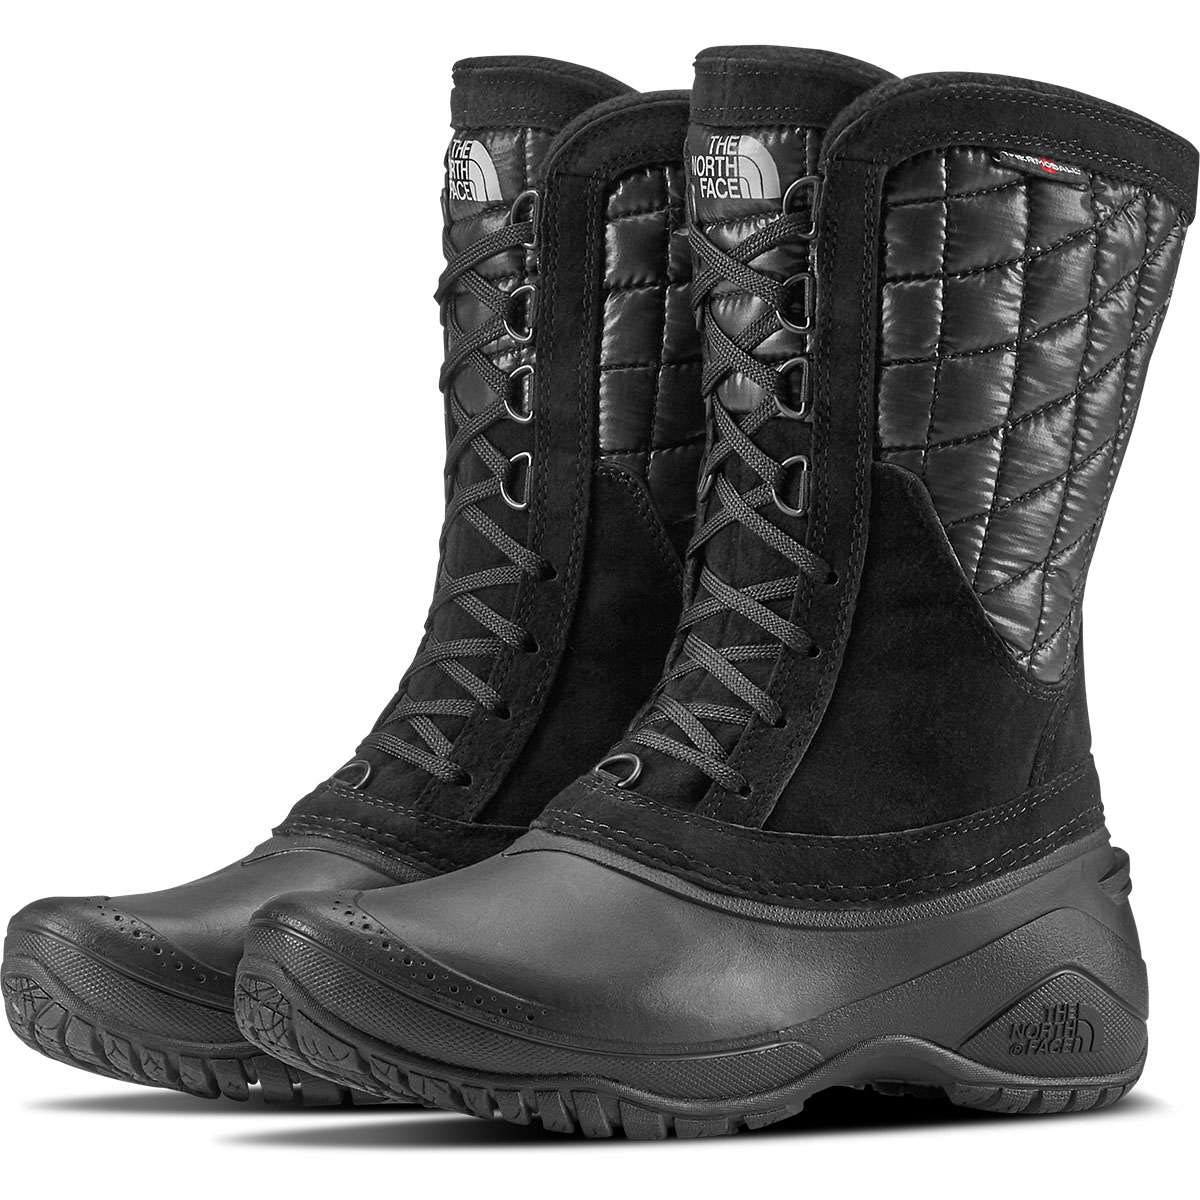 The North Face Women's Thermoball Utility Mid Boots, Black